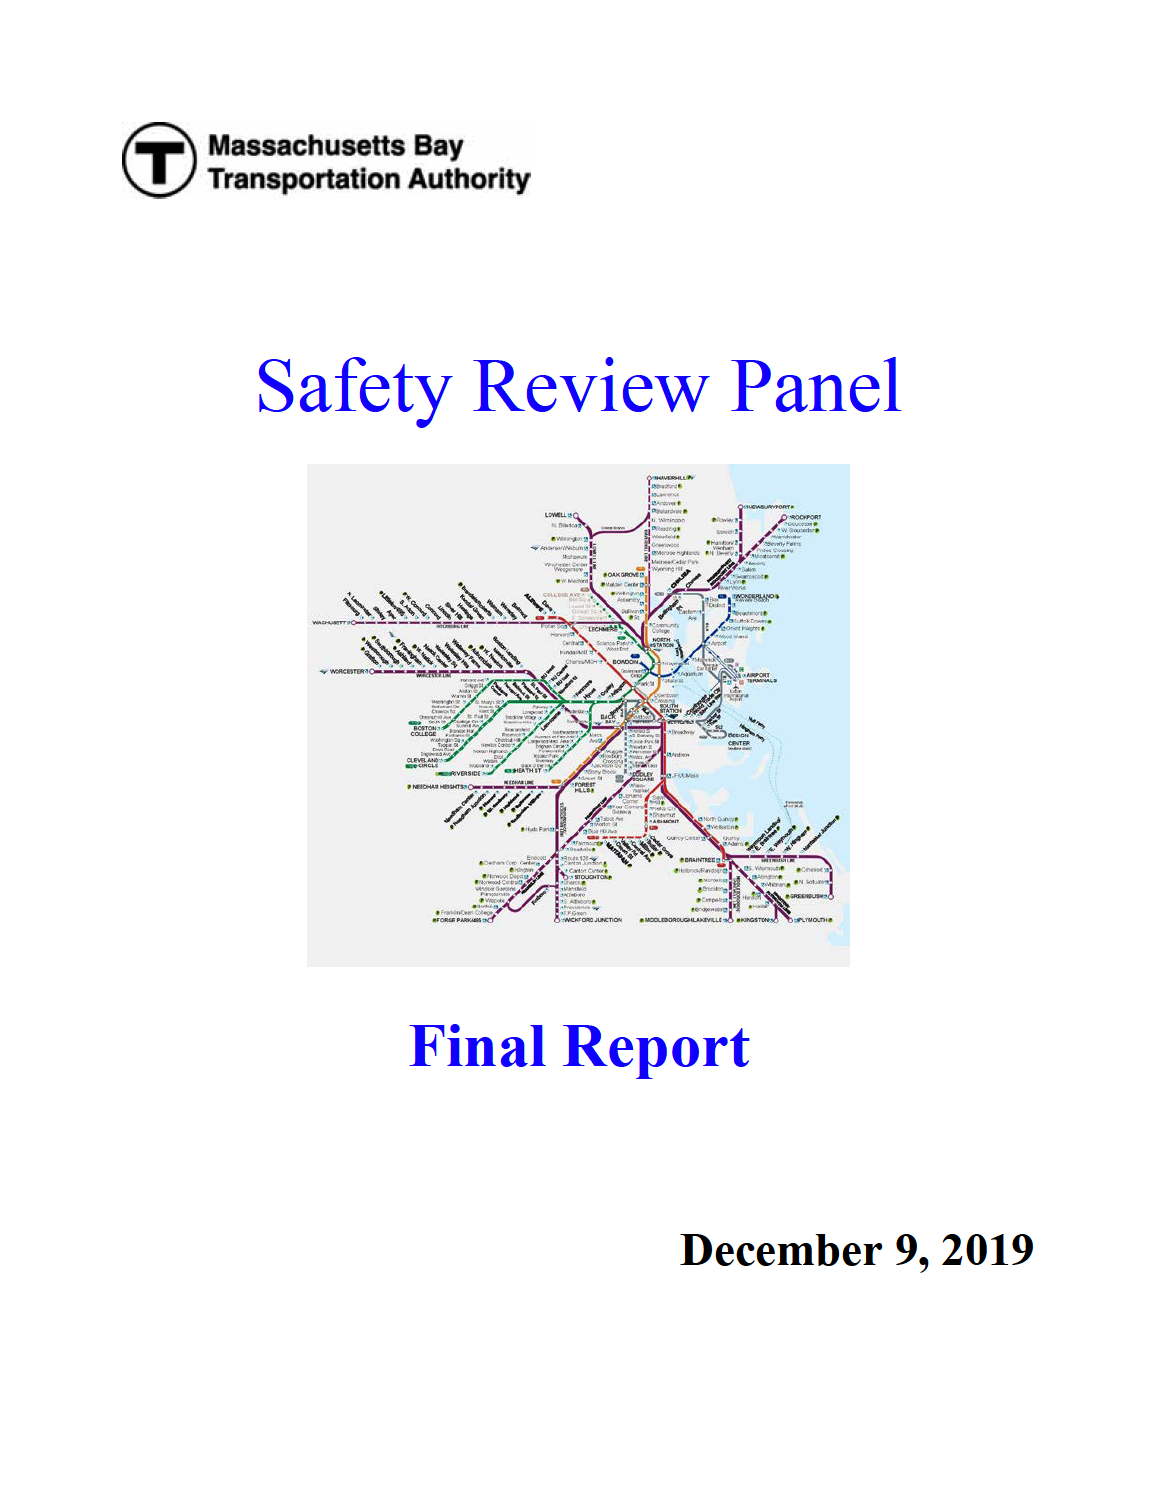 MBTA_Safety_Review_Panel_120919.png